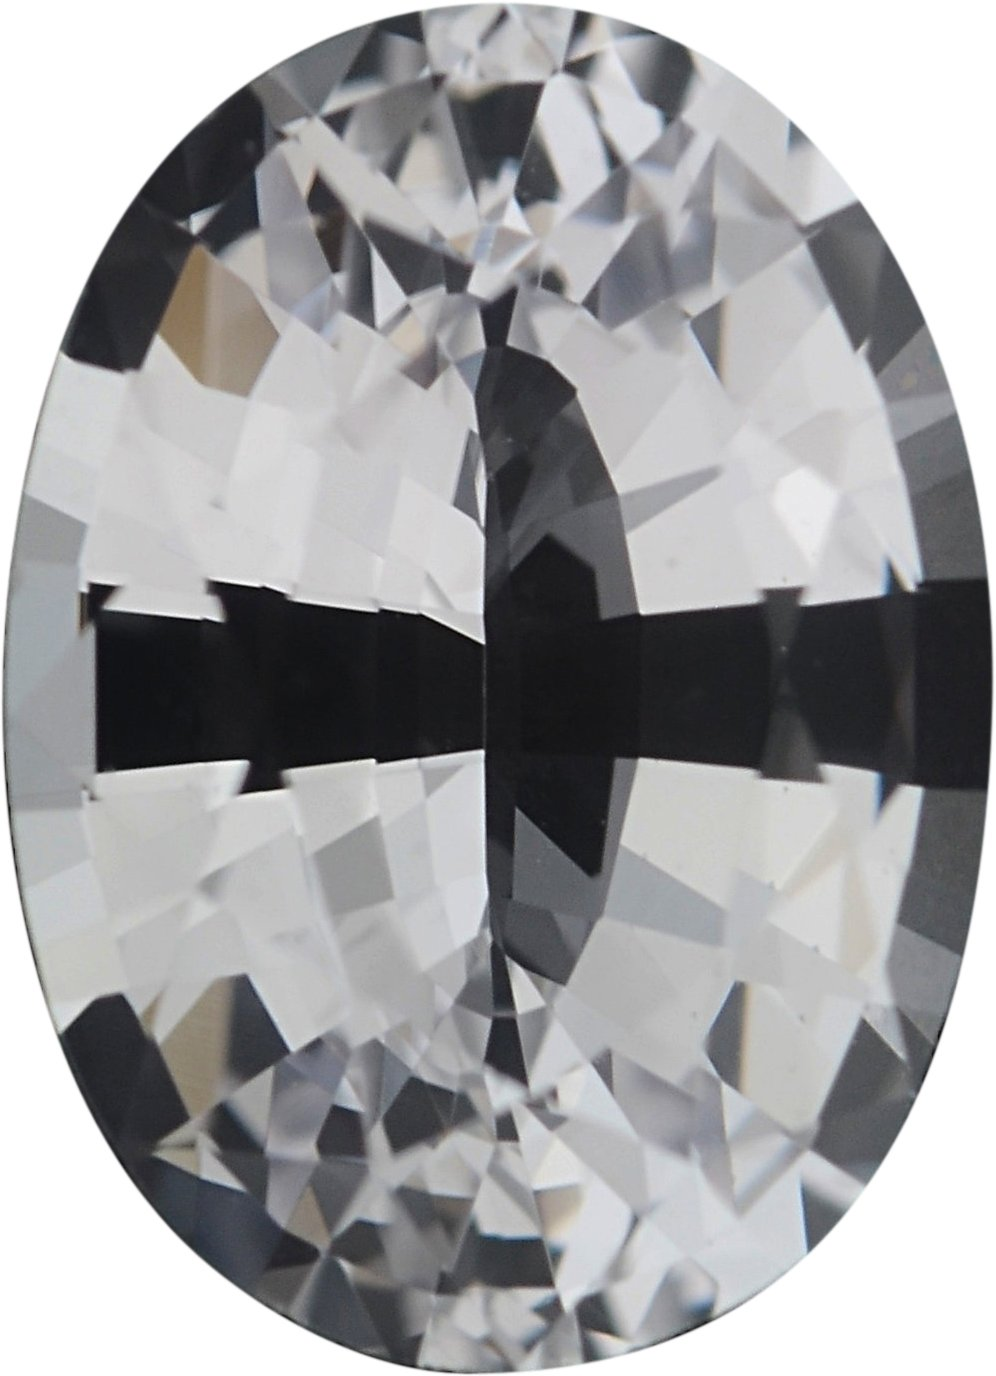 0.88 carats White Loose Sapphire Gemstone in Oval Cut, 6.86 x 4.95 mm